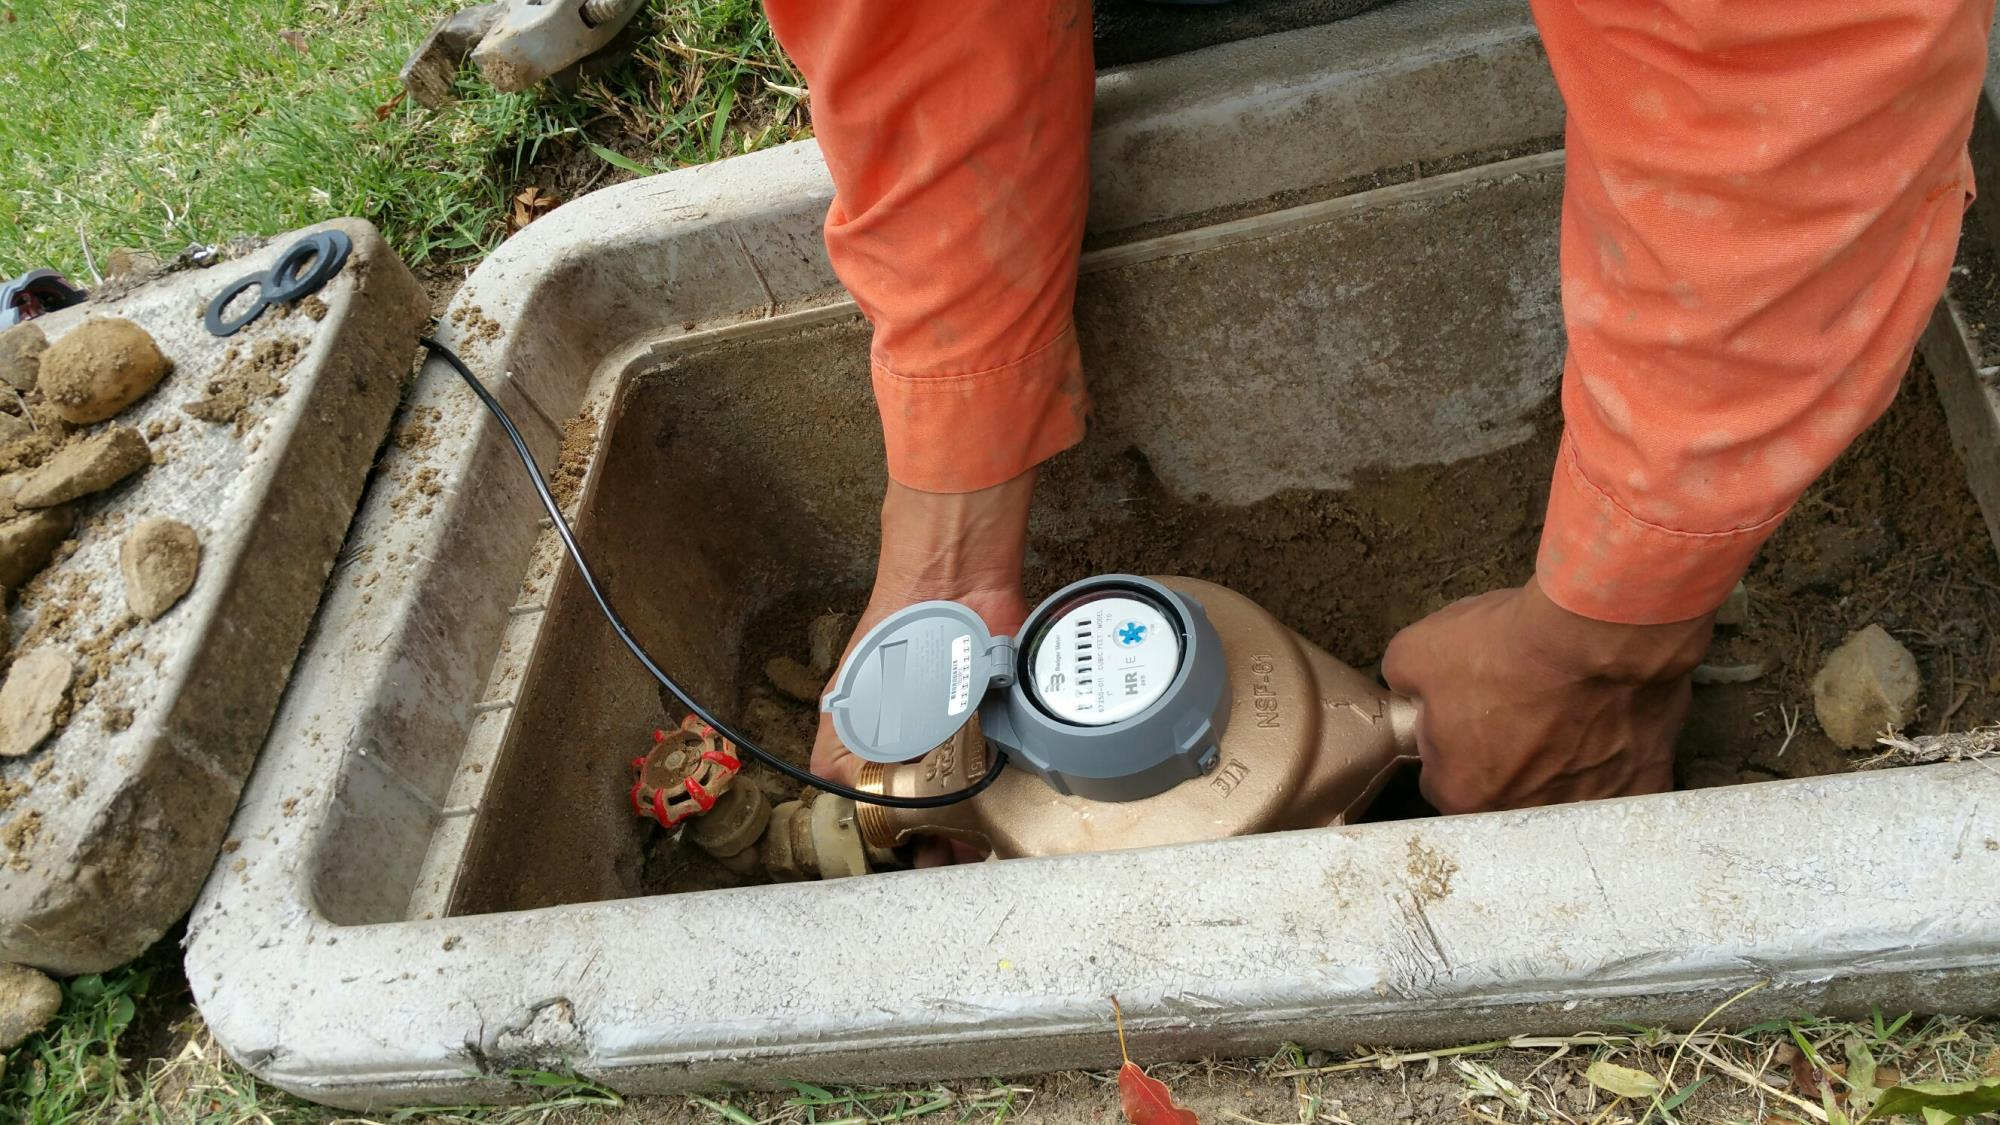 Water meter being inspected